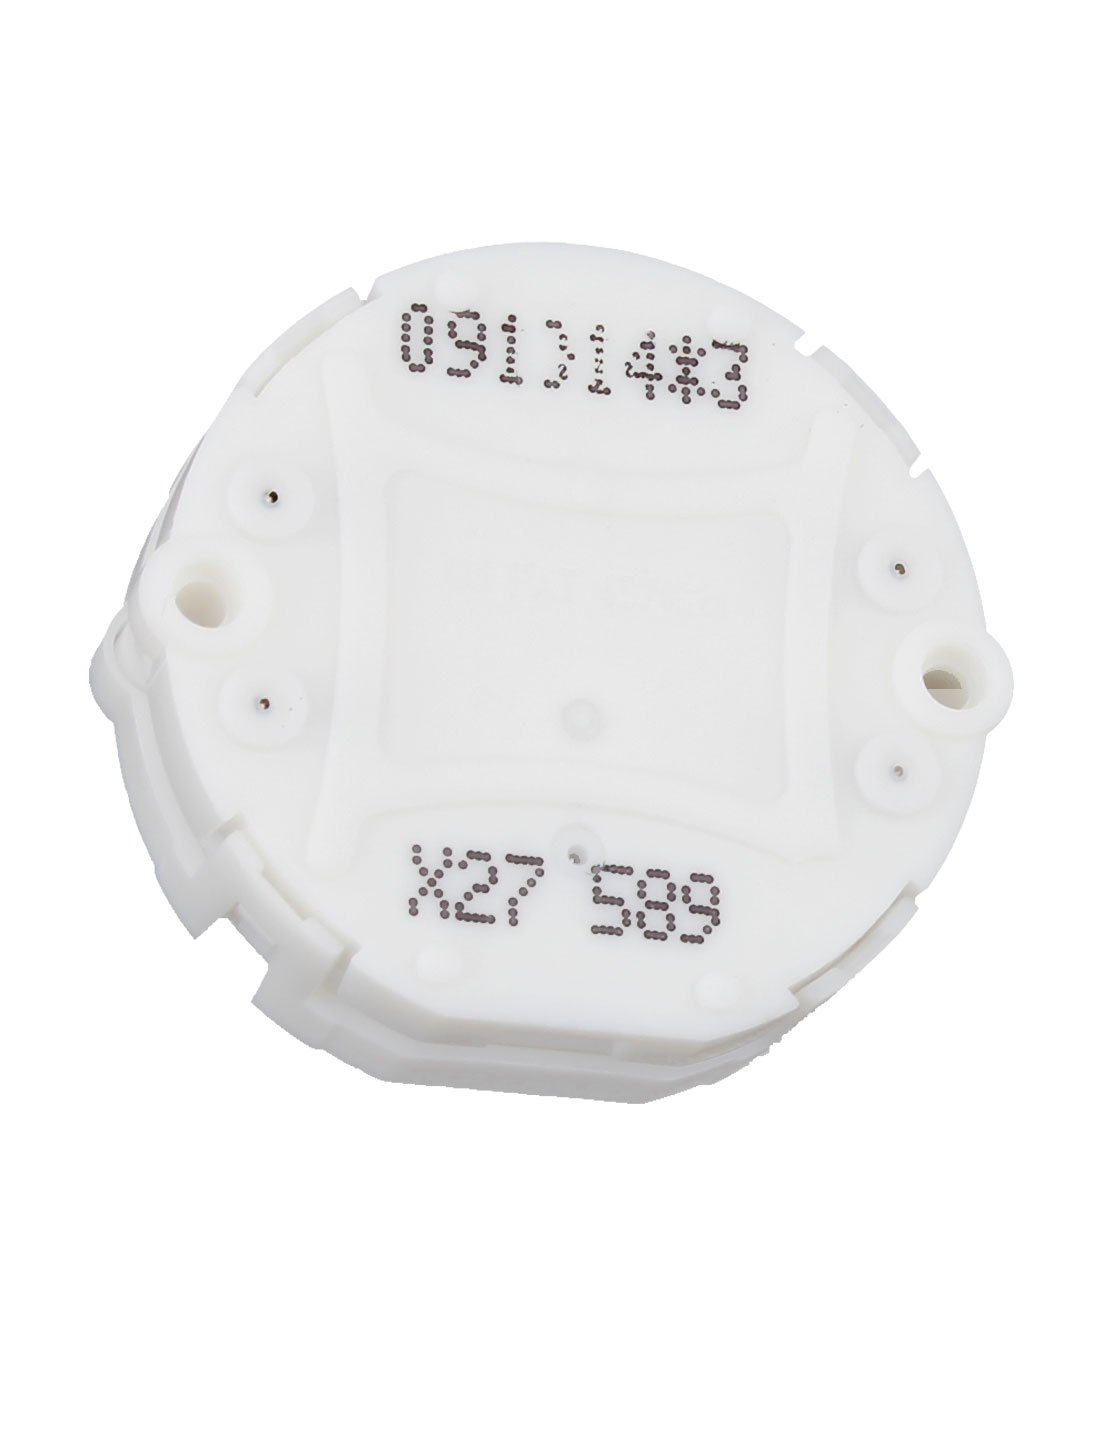 uxcell 7PCS White X27.589 X27589 Speedometer Cluster Gauge Stepper Motors a14061000ux0101